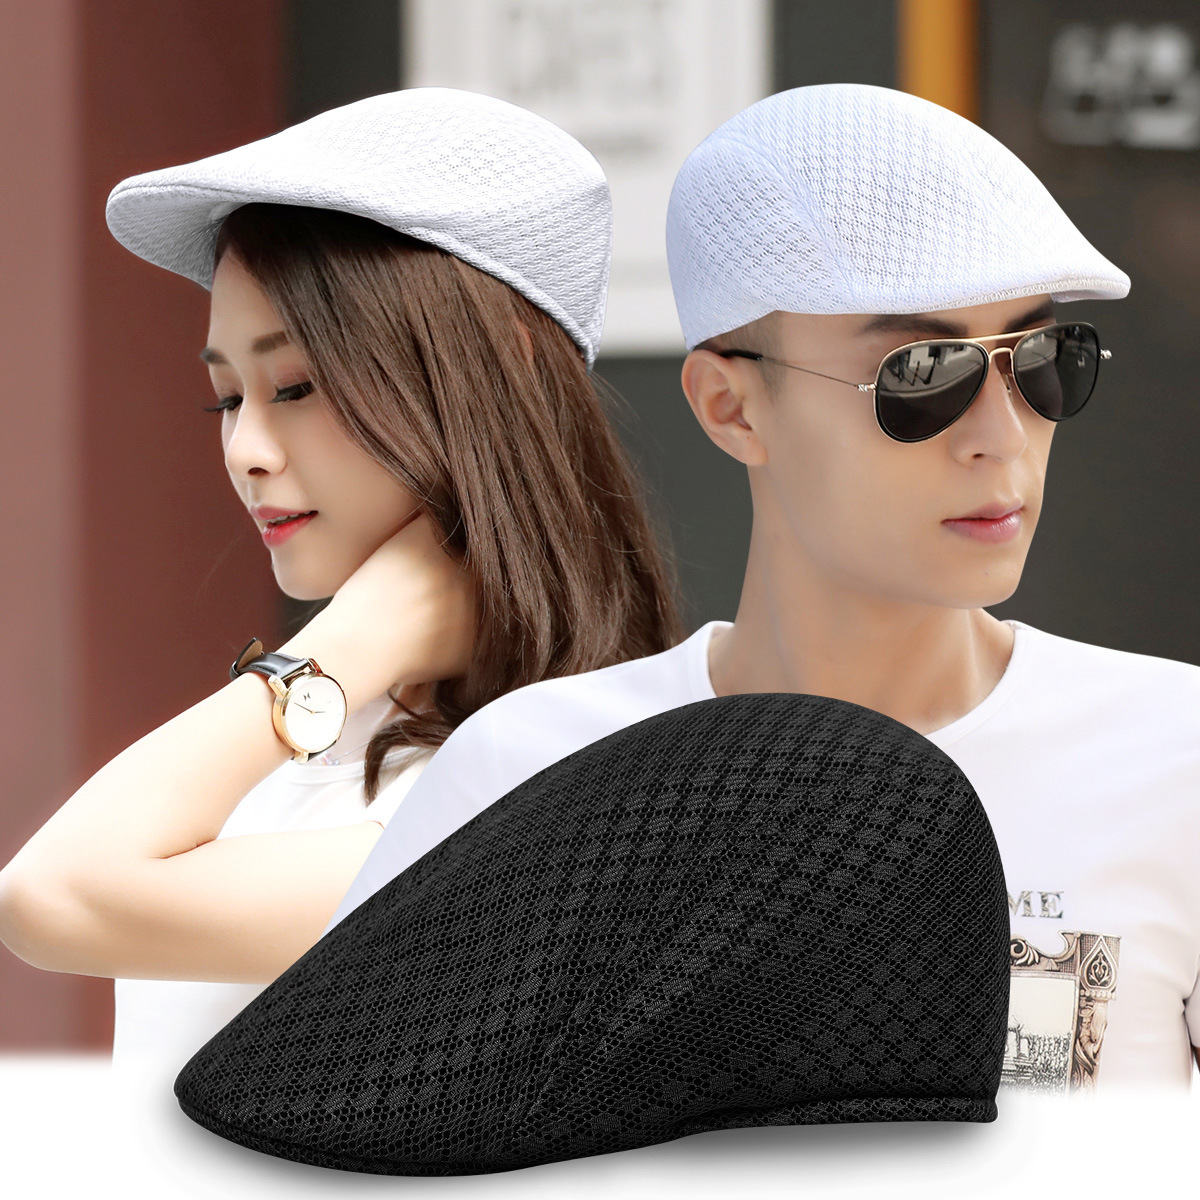 Beckyruiwu Beret-Hat Sun-Hats Mesh Ivy-Cap Fitted Male Women Summer Casual Solid Spring